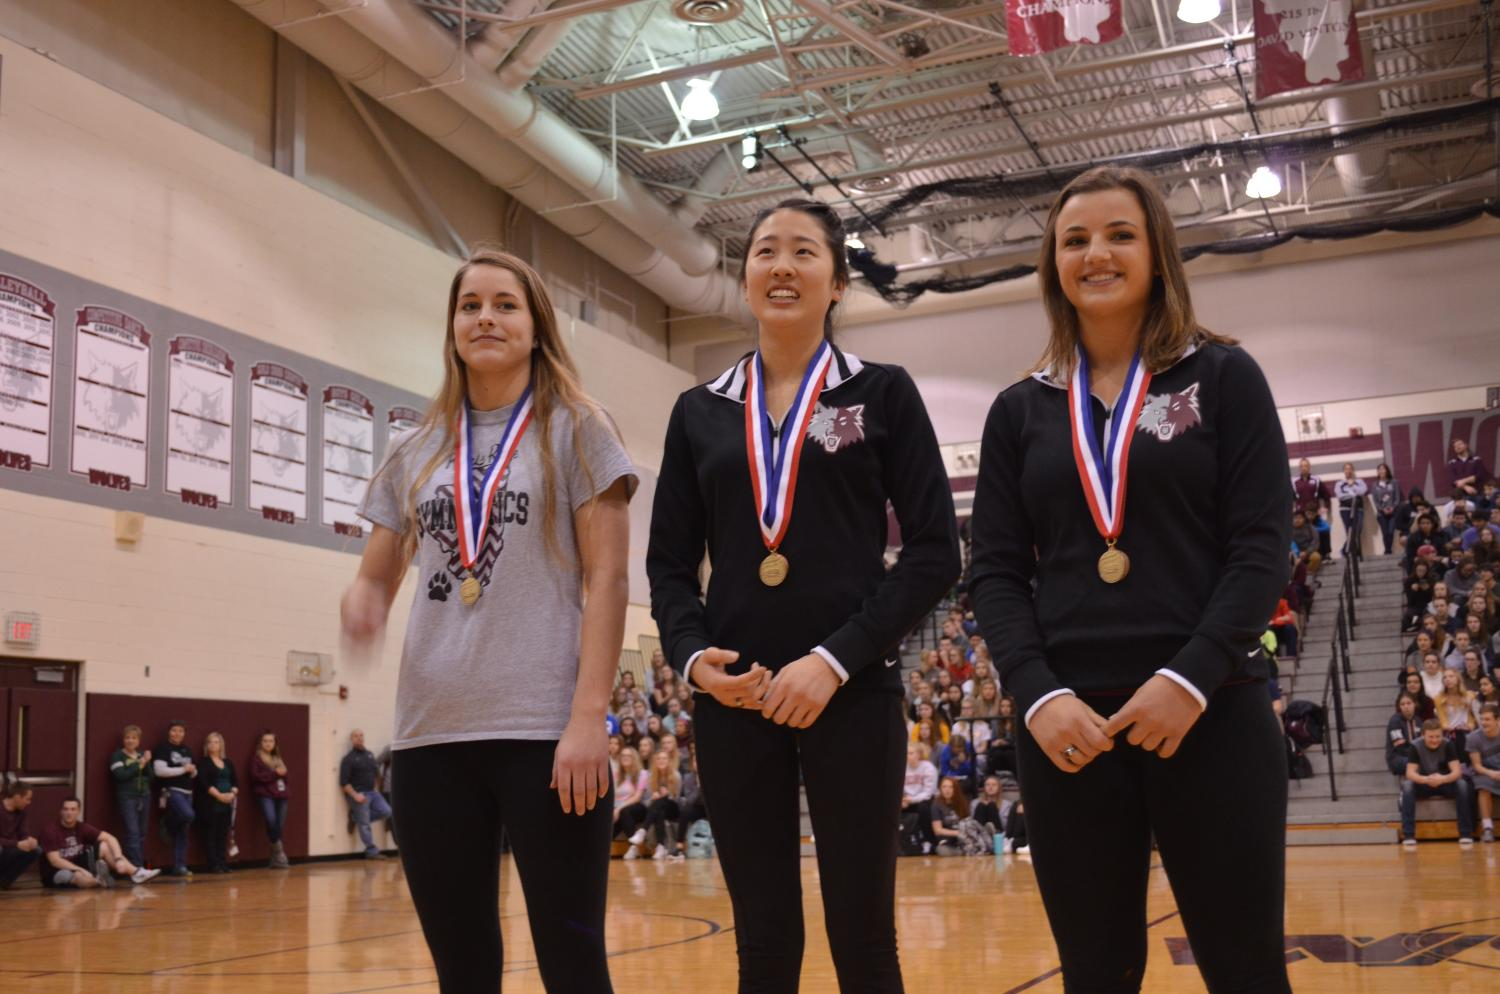 The Girls' Gymnastics Prairie Ridge Co-op team dominated this year with regional, sectional, and now a second state championship. Pictured here are gymnasts Erinn Placko, Maddi Kim, and  Kira Karlblom.